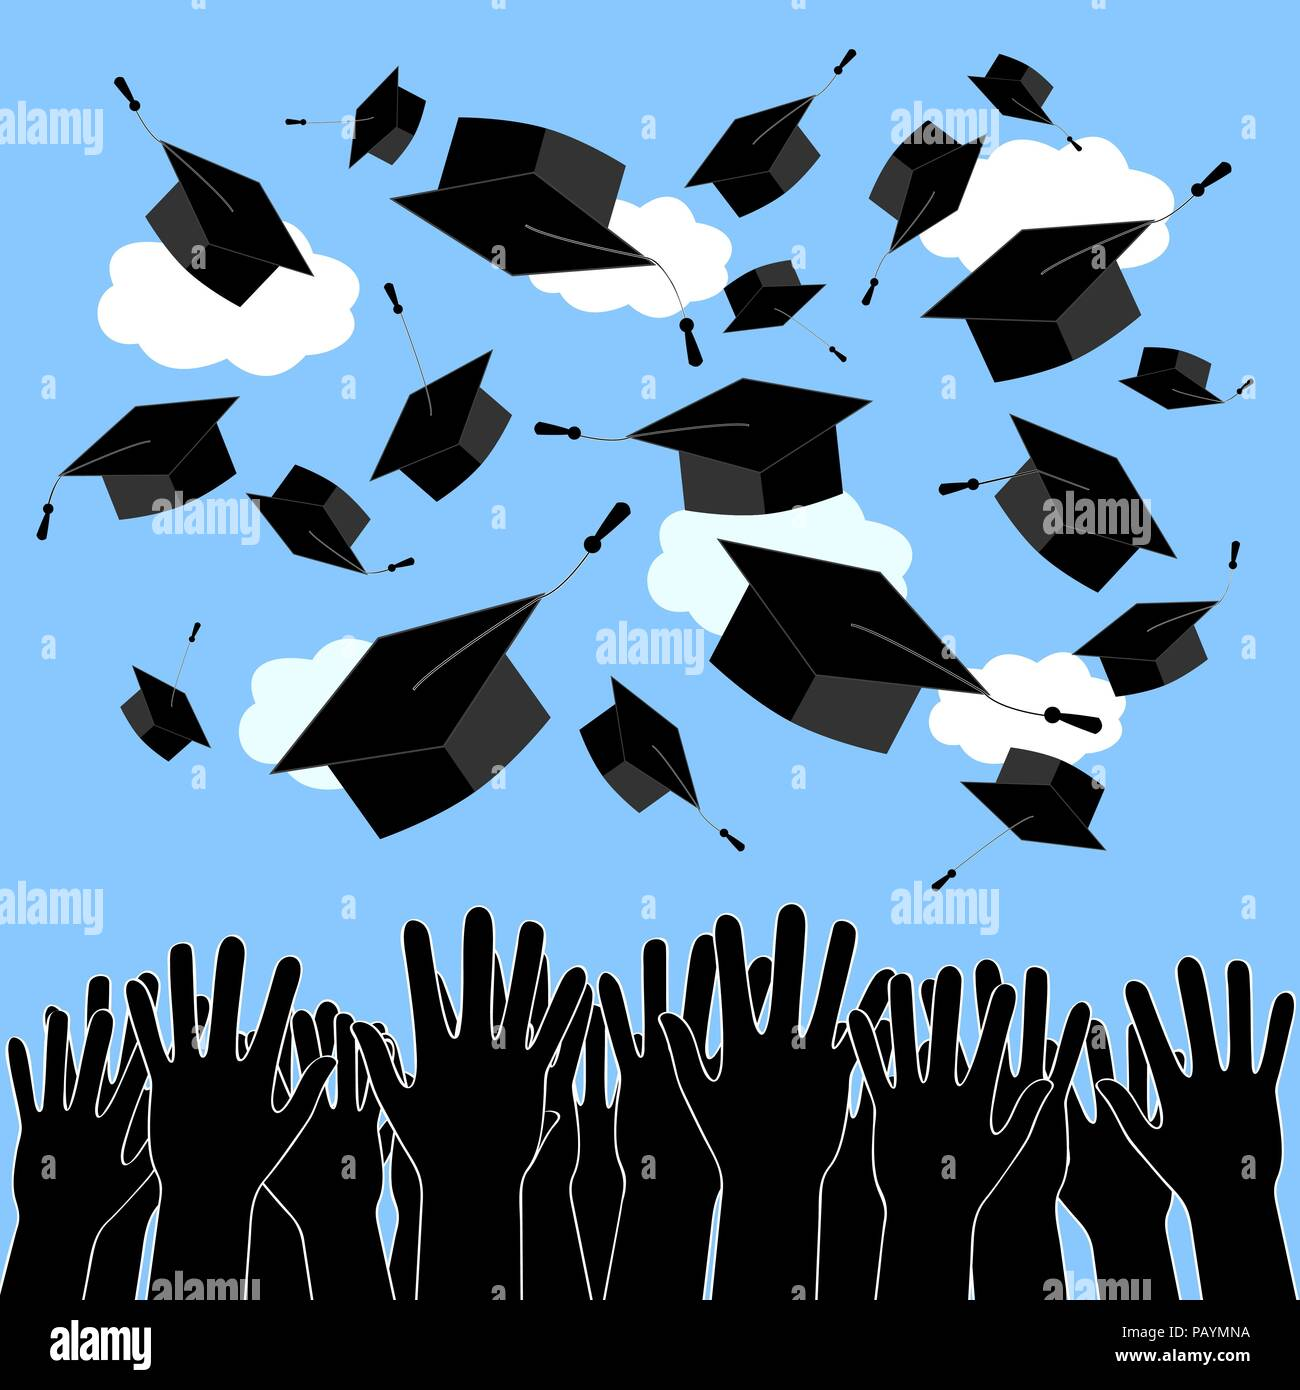 graduate hands silhouettes throwing up graduation hats graduation